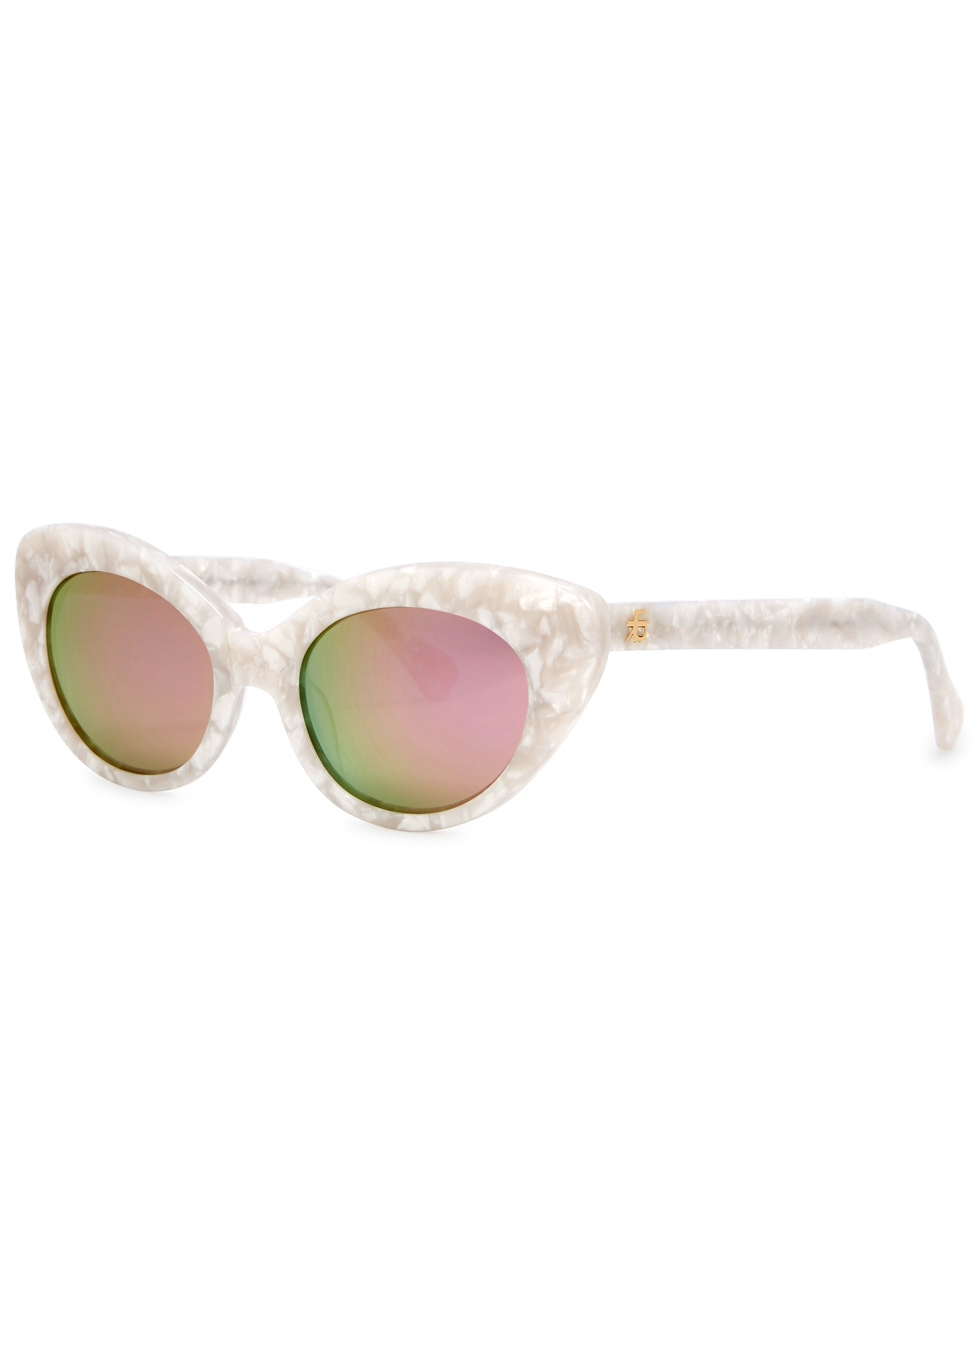 ROBERI AND FRAUD Agnes White Cat-Eye Sunglasses